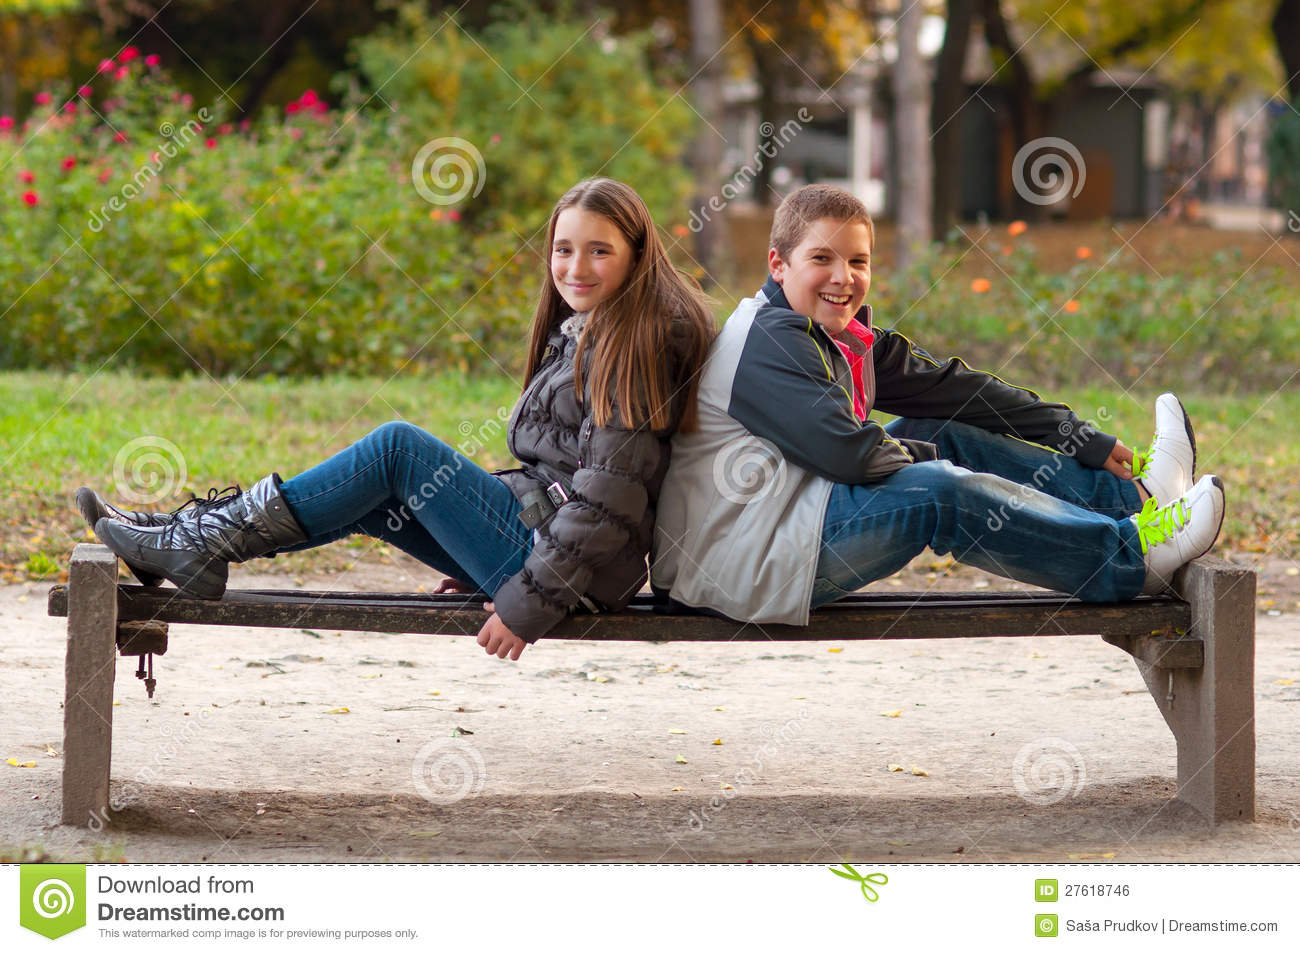 Girl and boy having fun